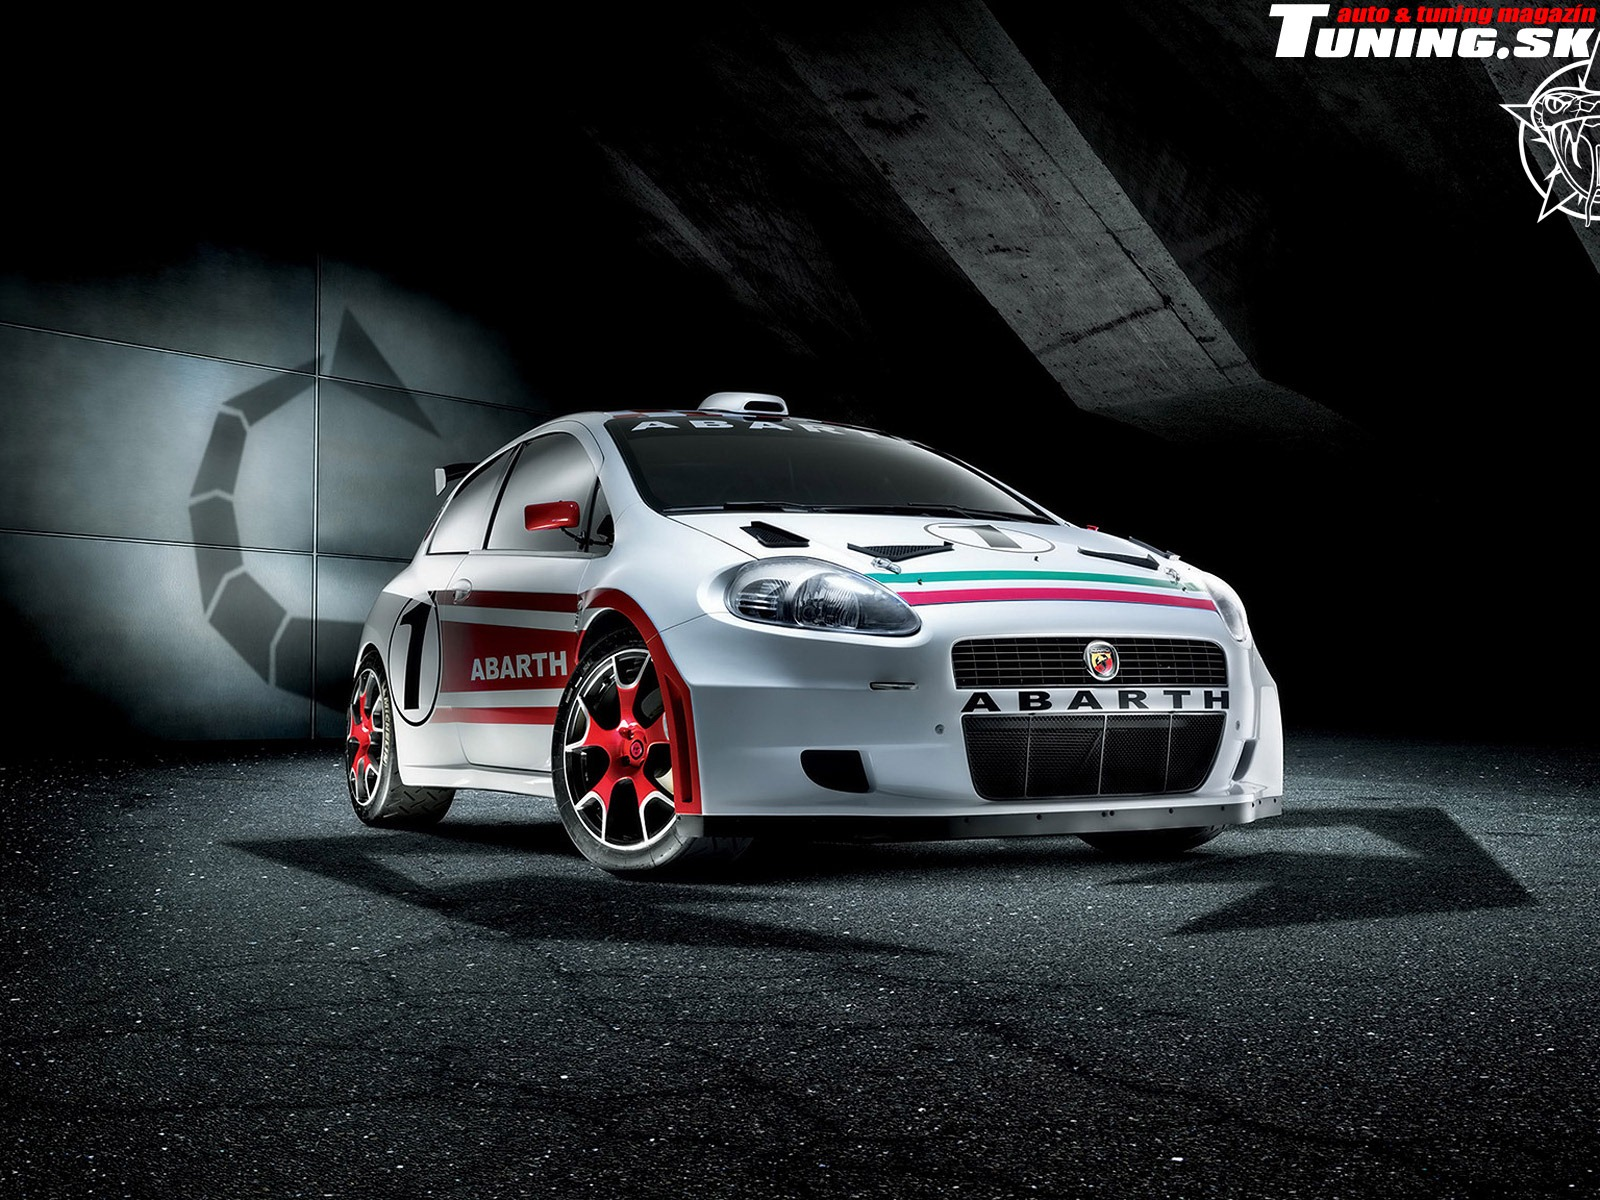 Tuning Car Girl Wallpaper Photo Collection Graphics Arts Amazing Designs And More